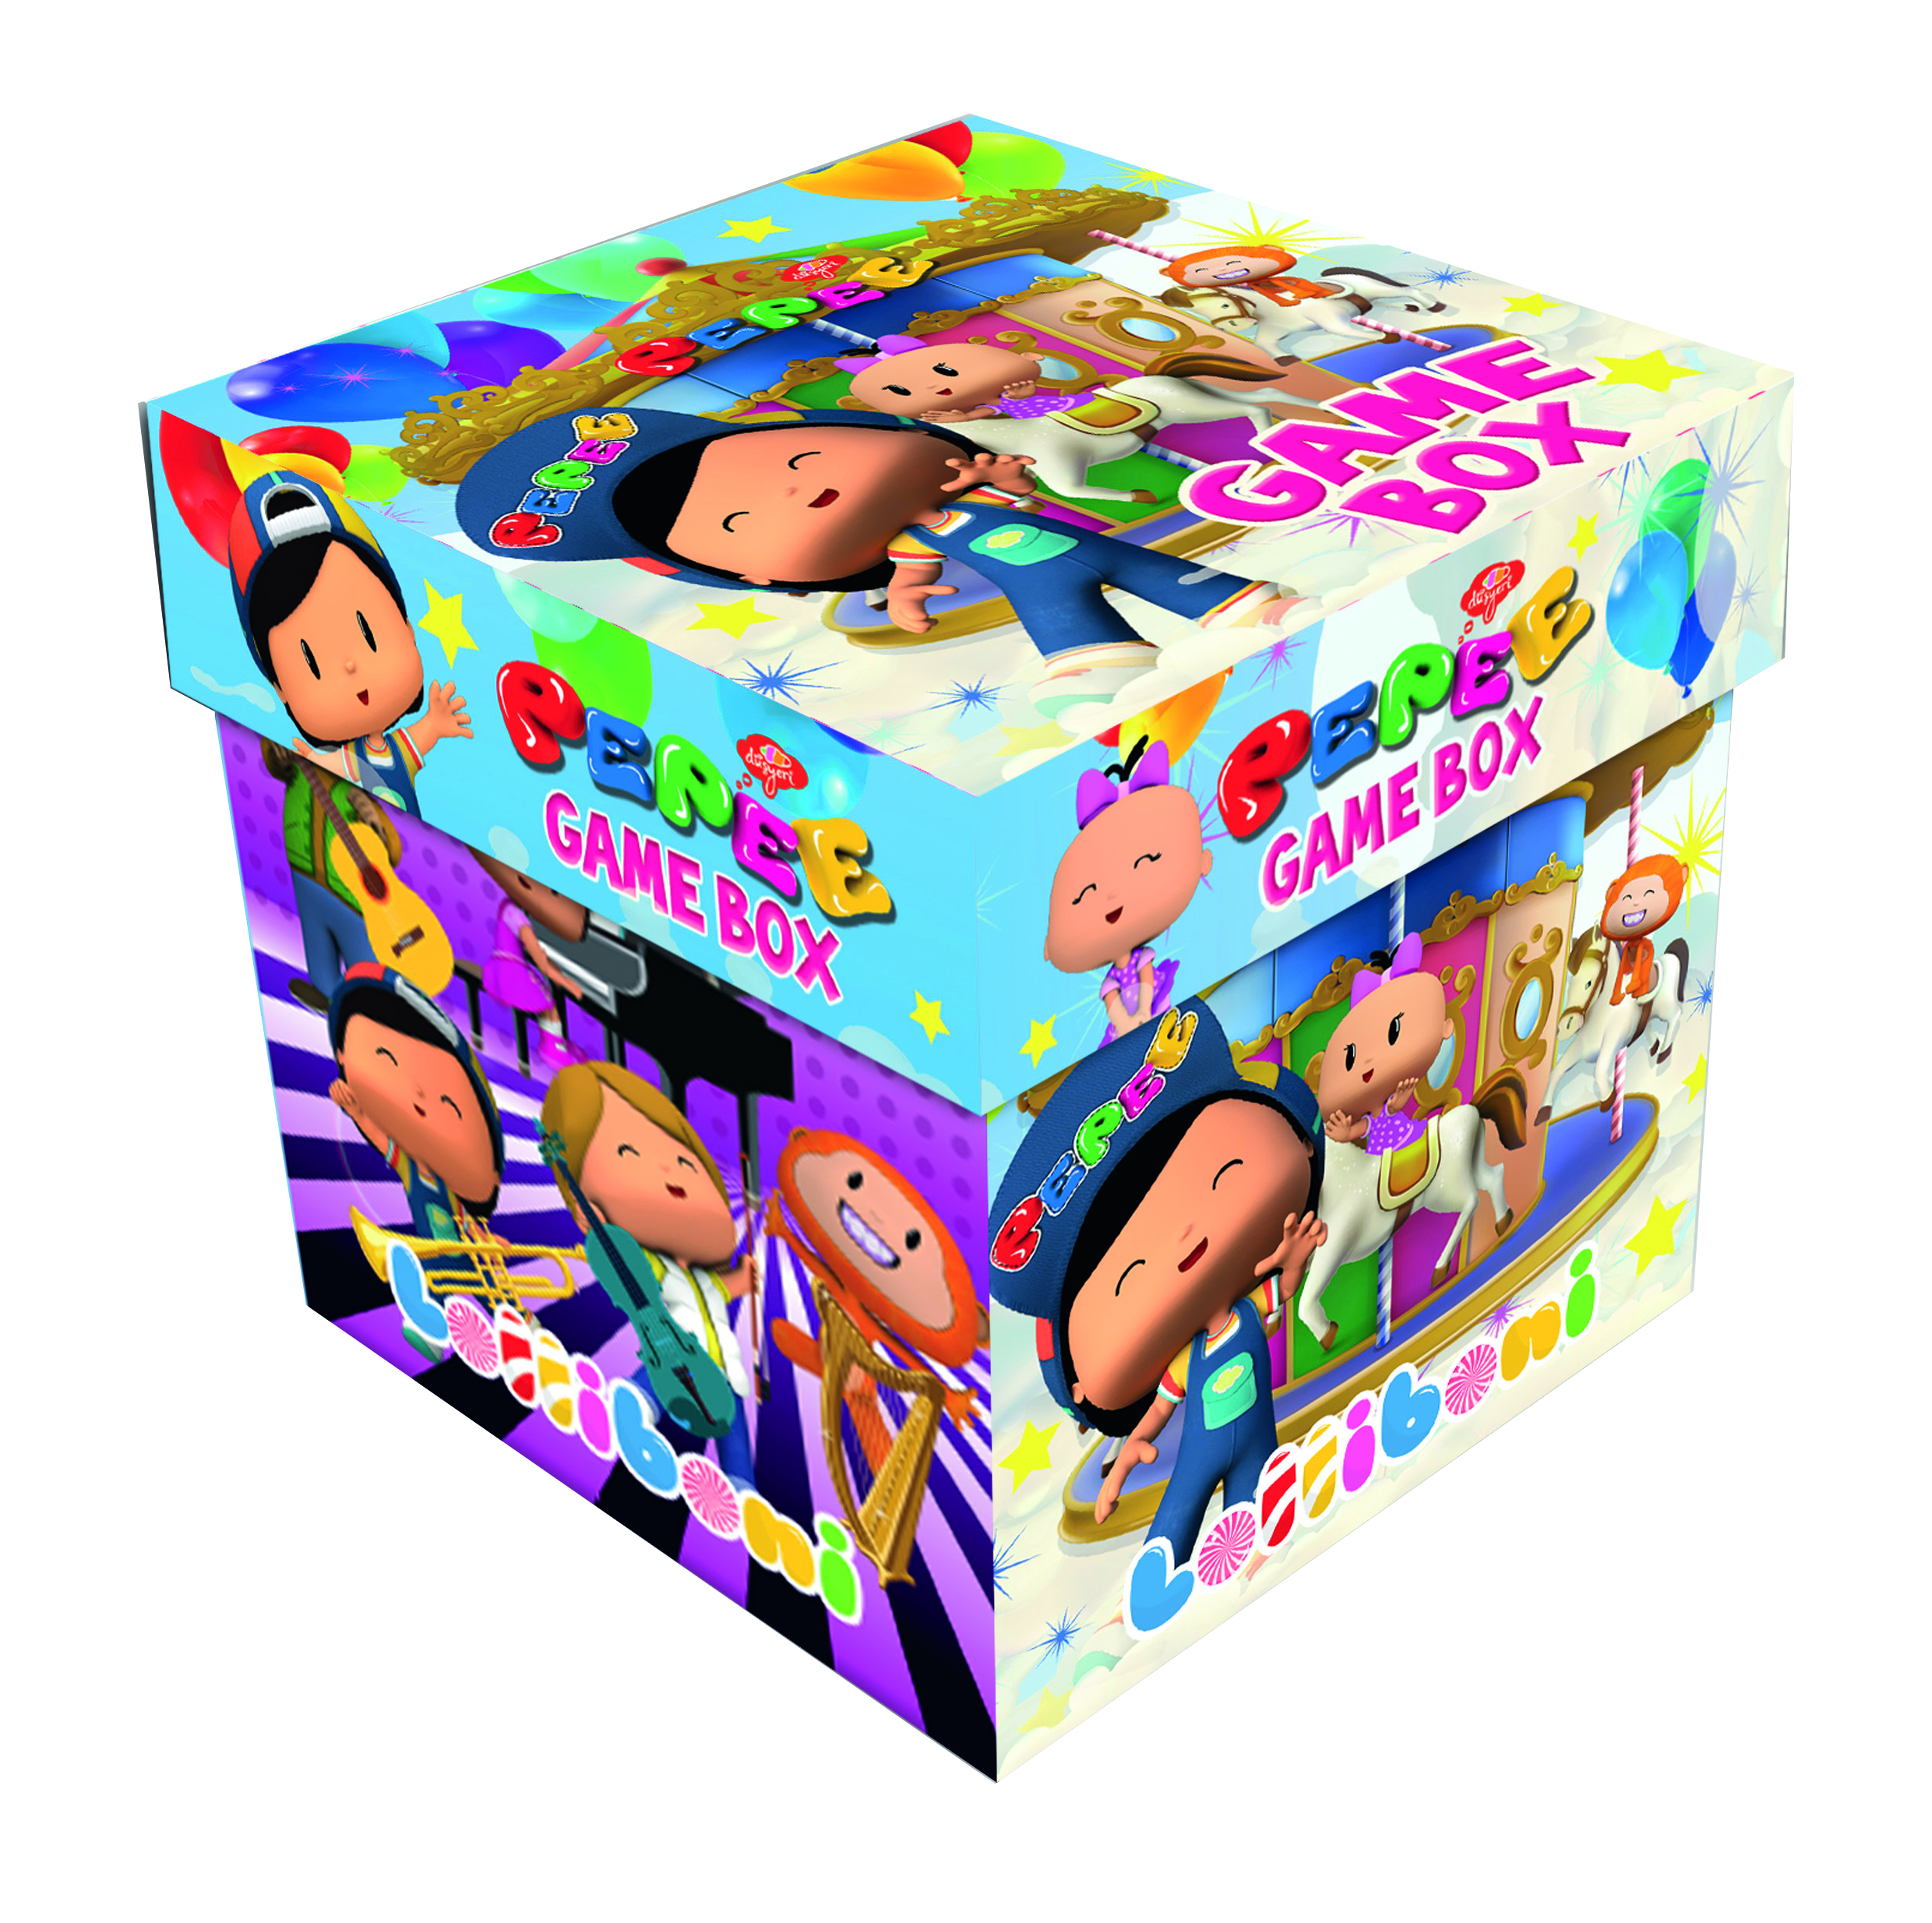 Pepee game box